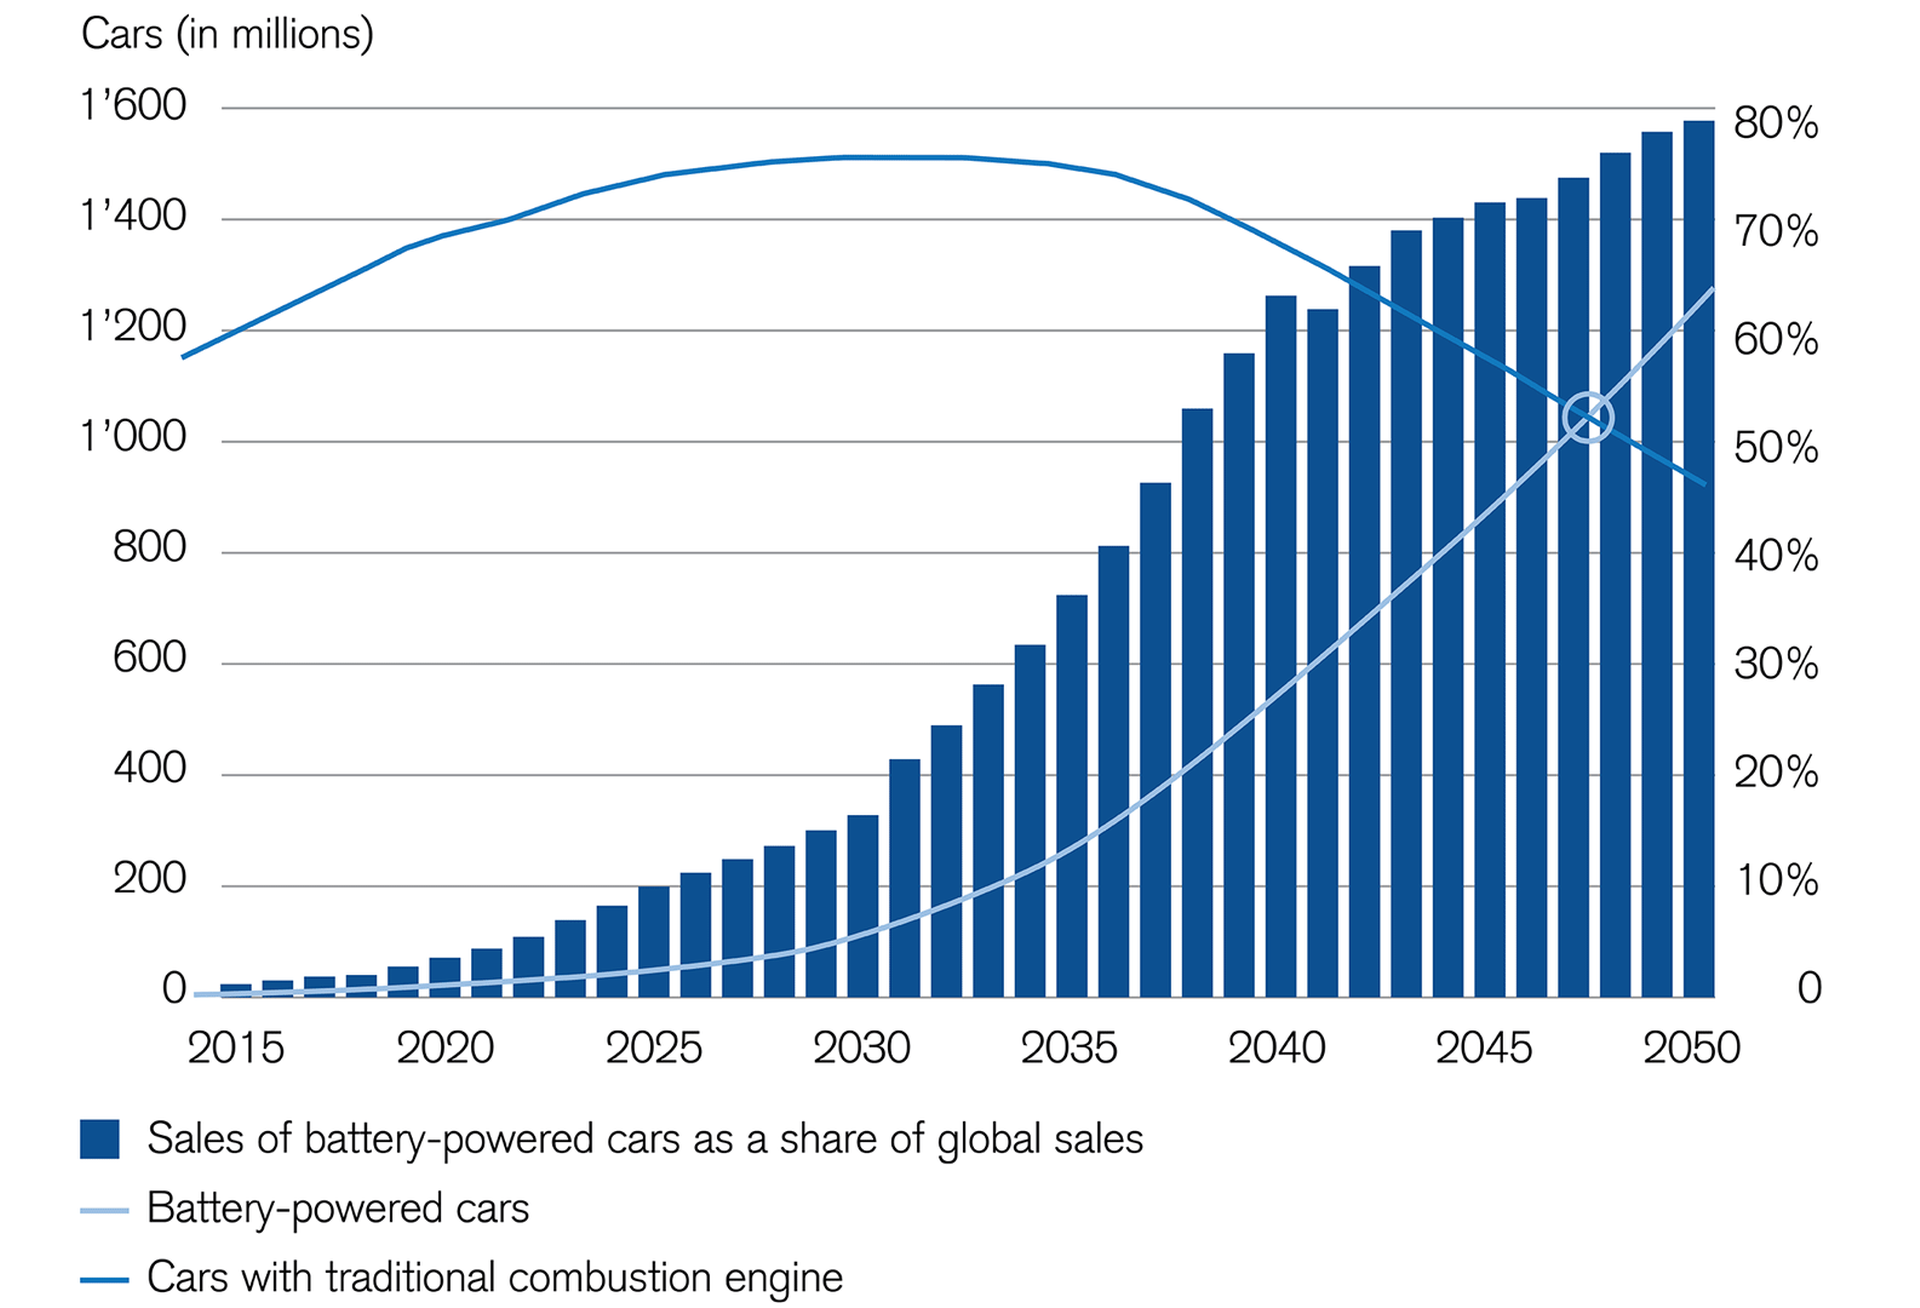 electromobility-is-booming-with-rising-numbers-of-electric-cars